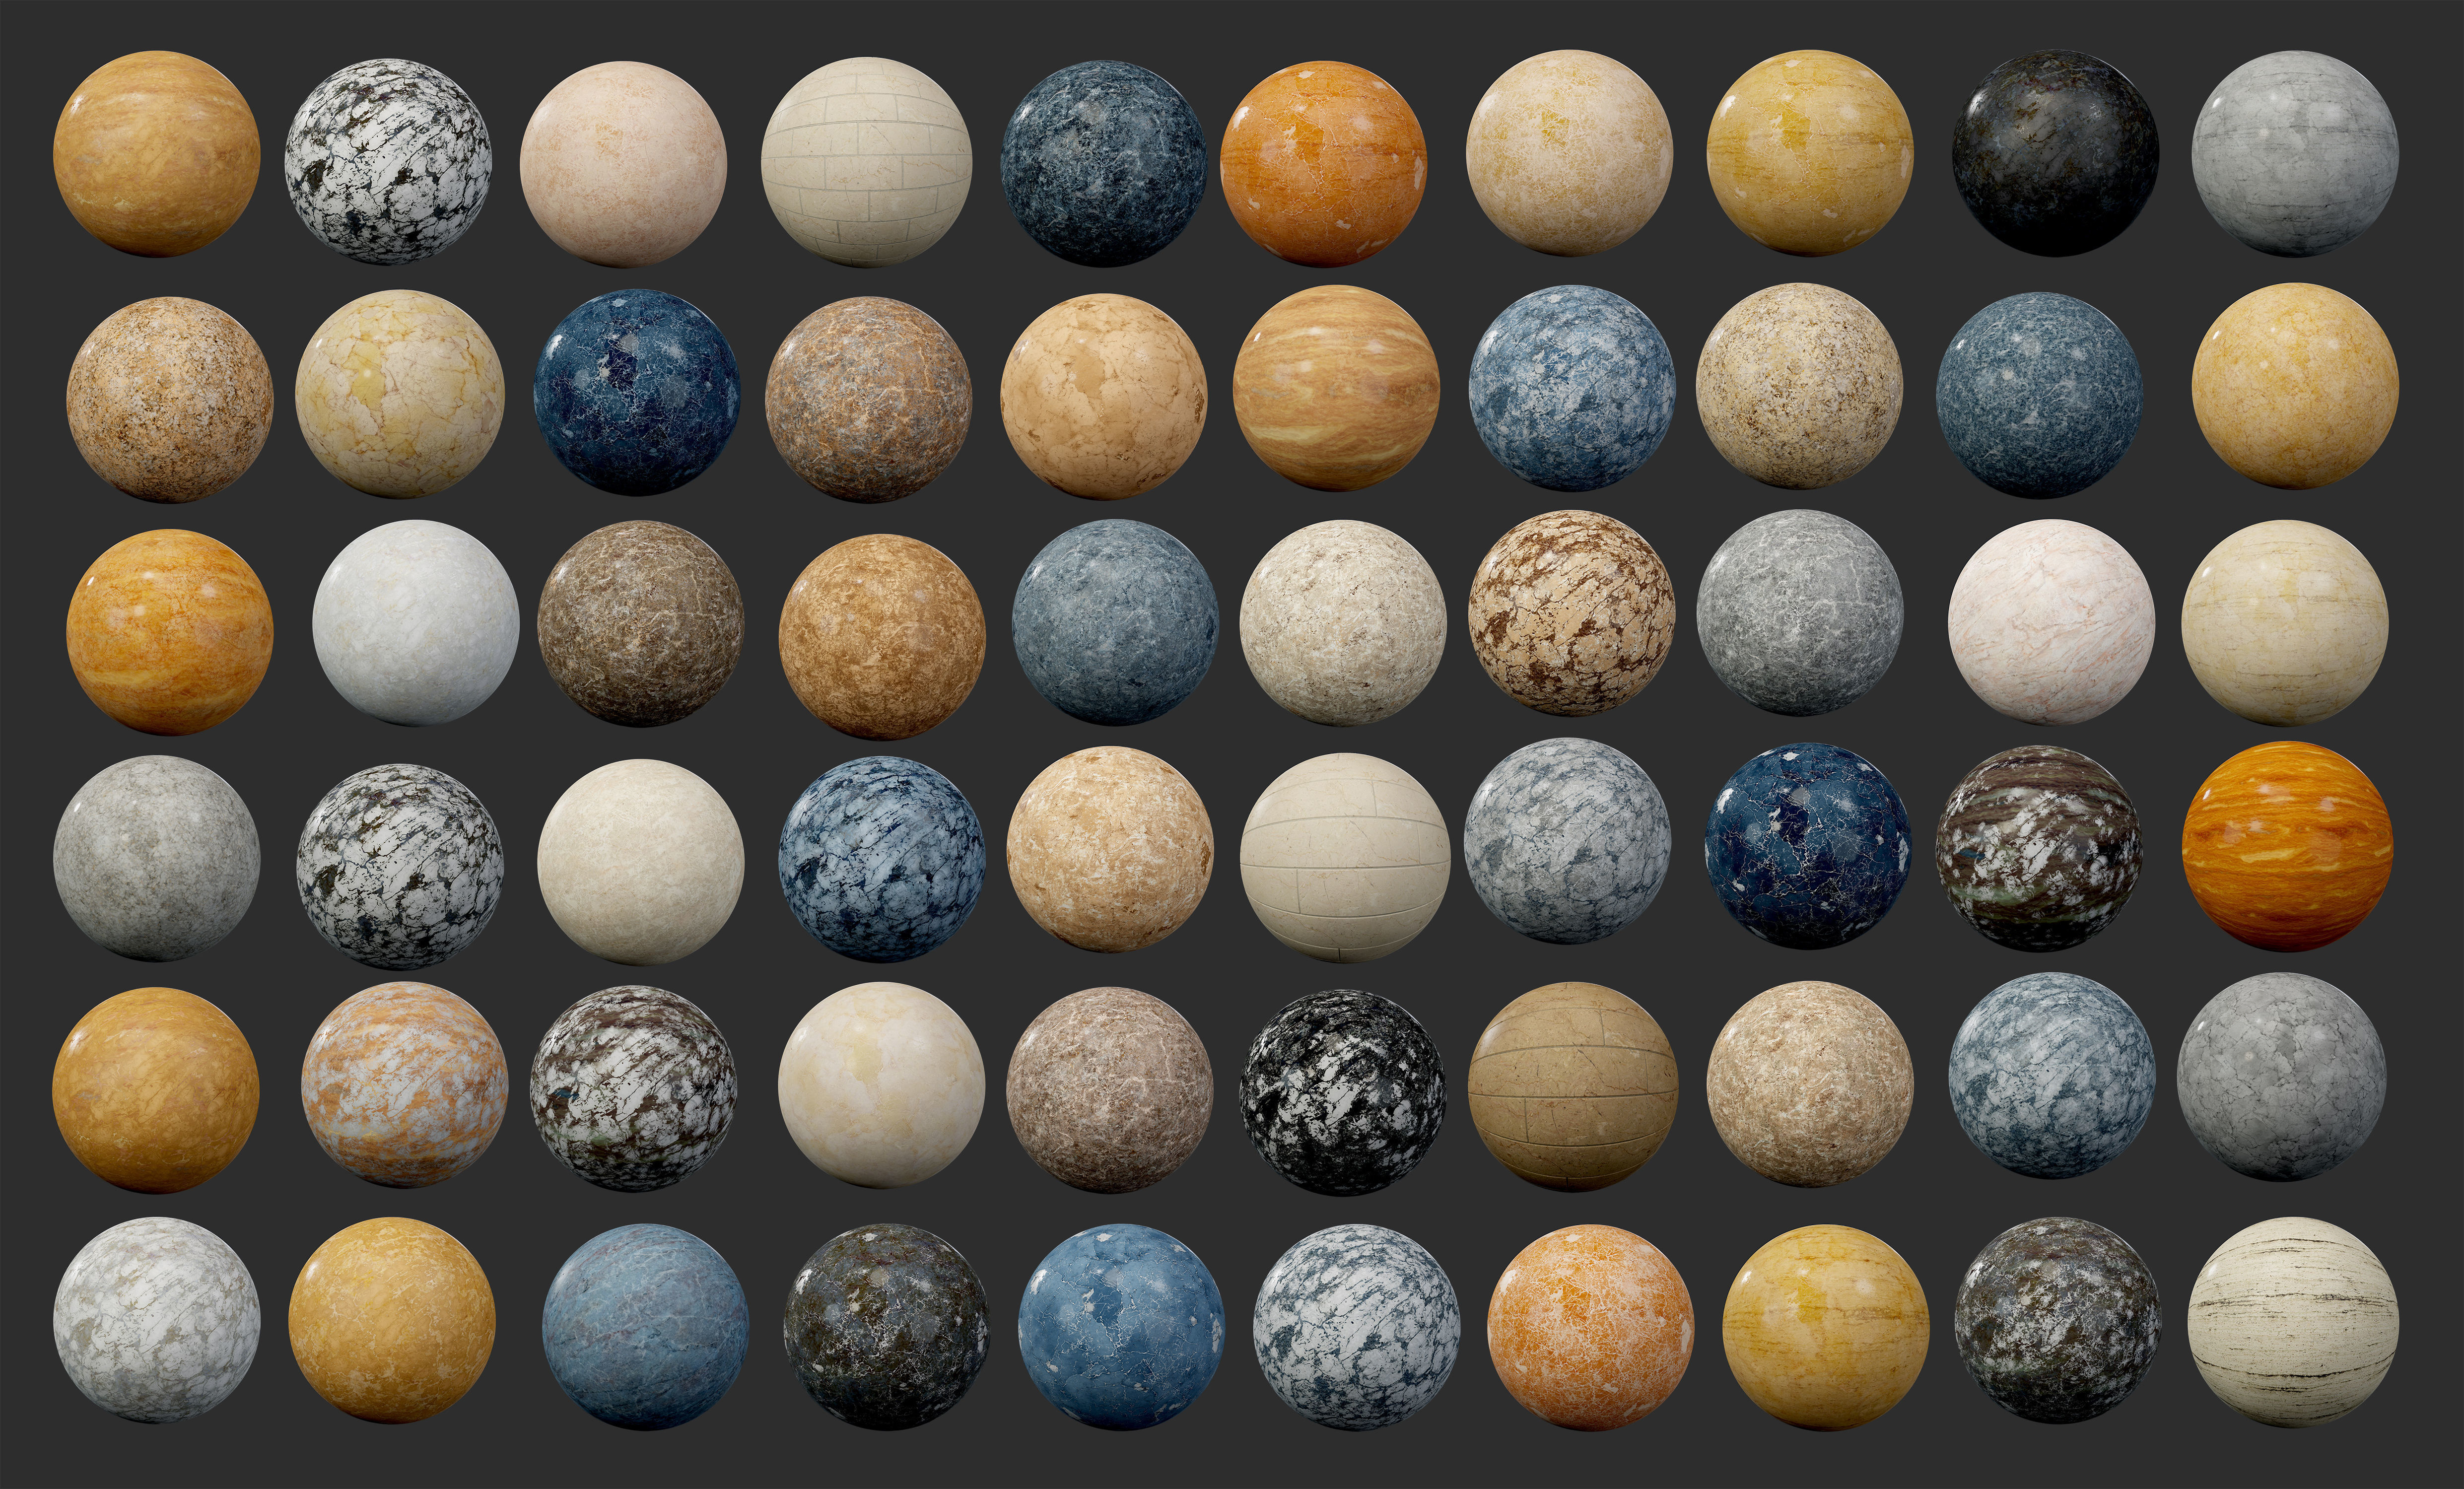 60 Marble and Granite Seamless PBR Textures